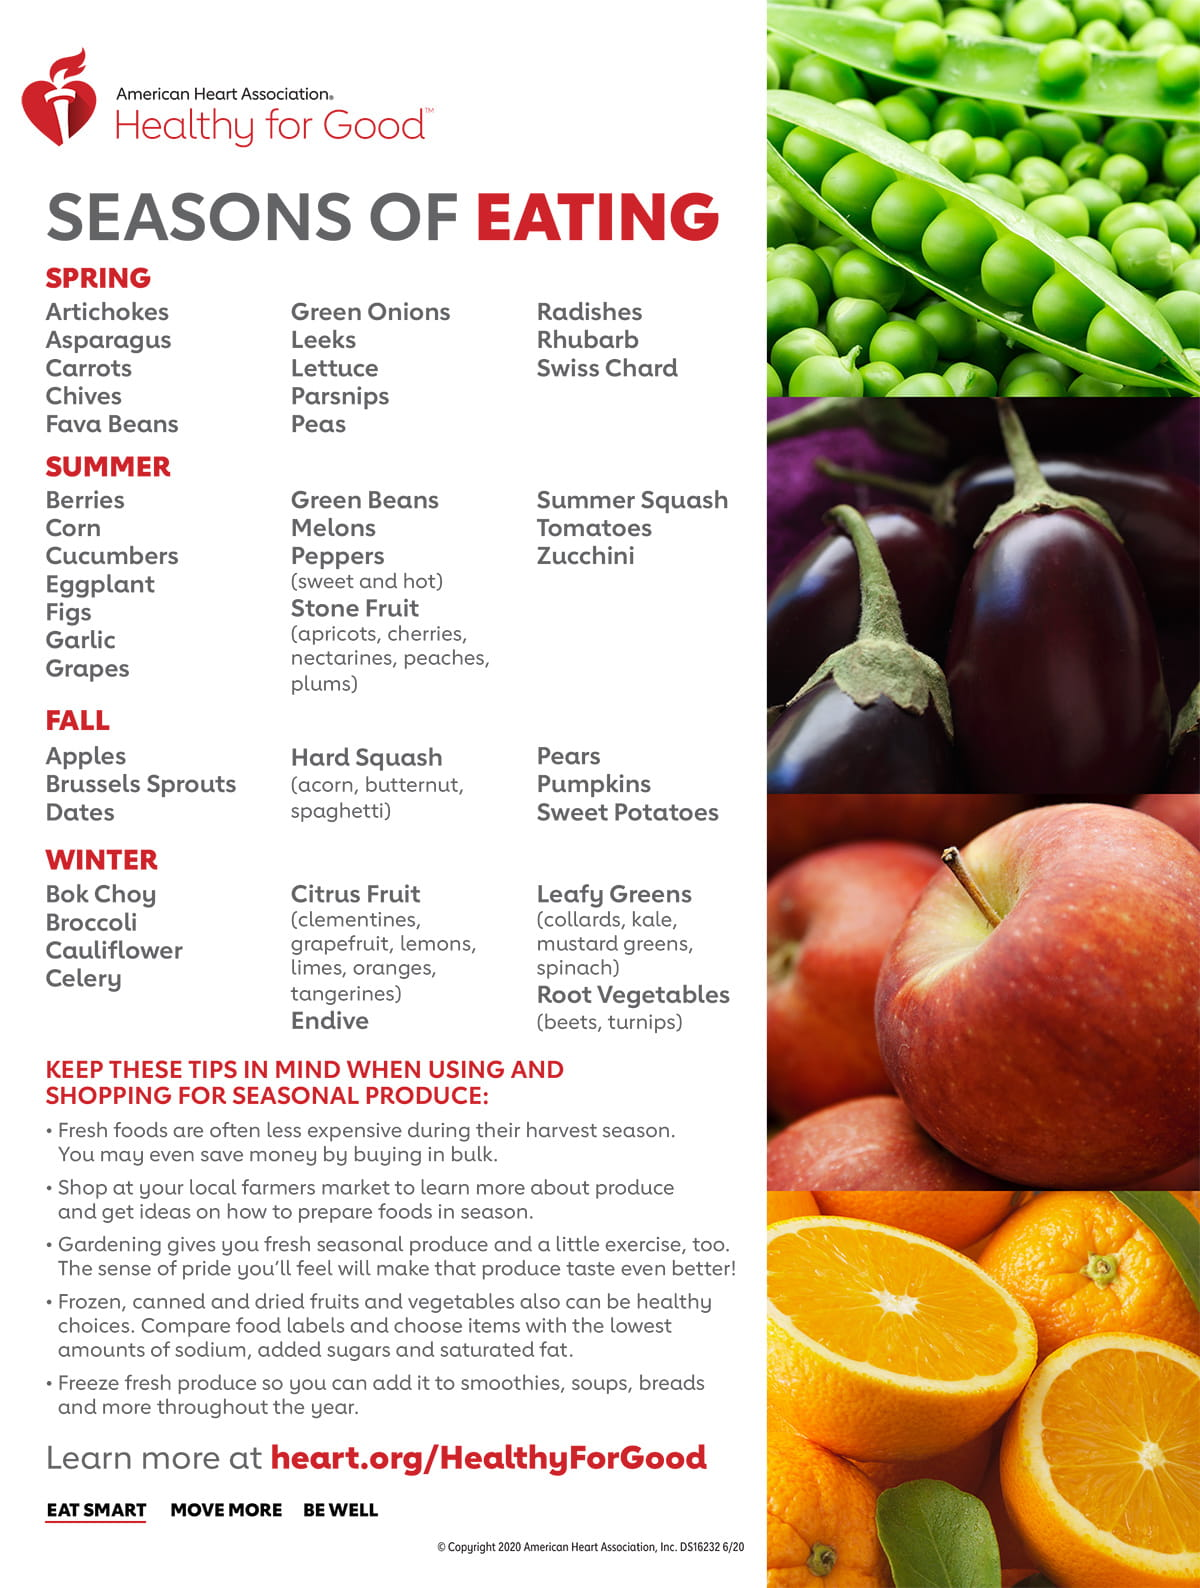 Seasons of Eating Infographic